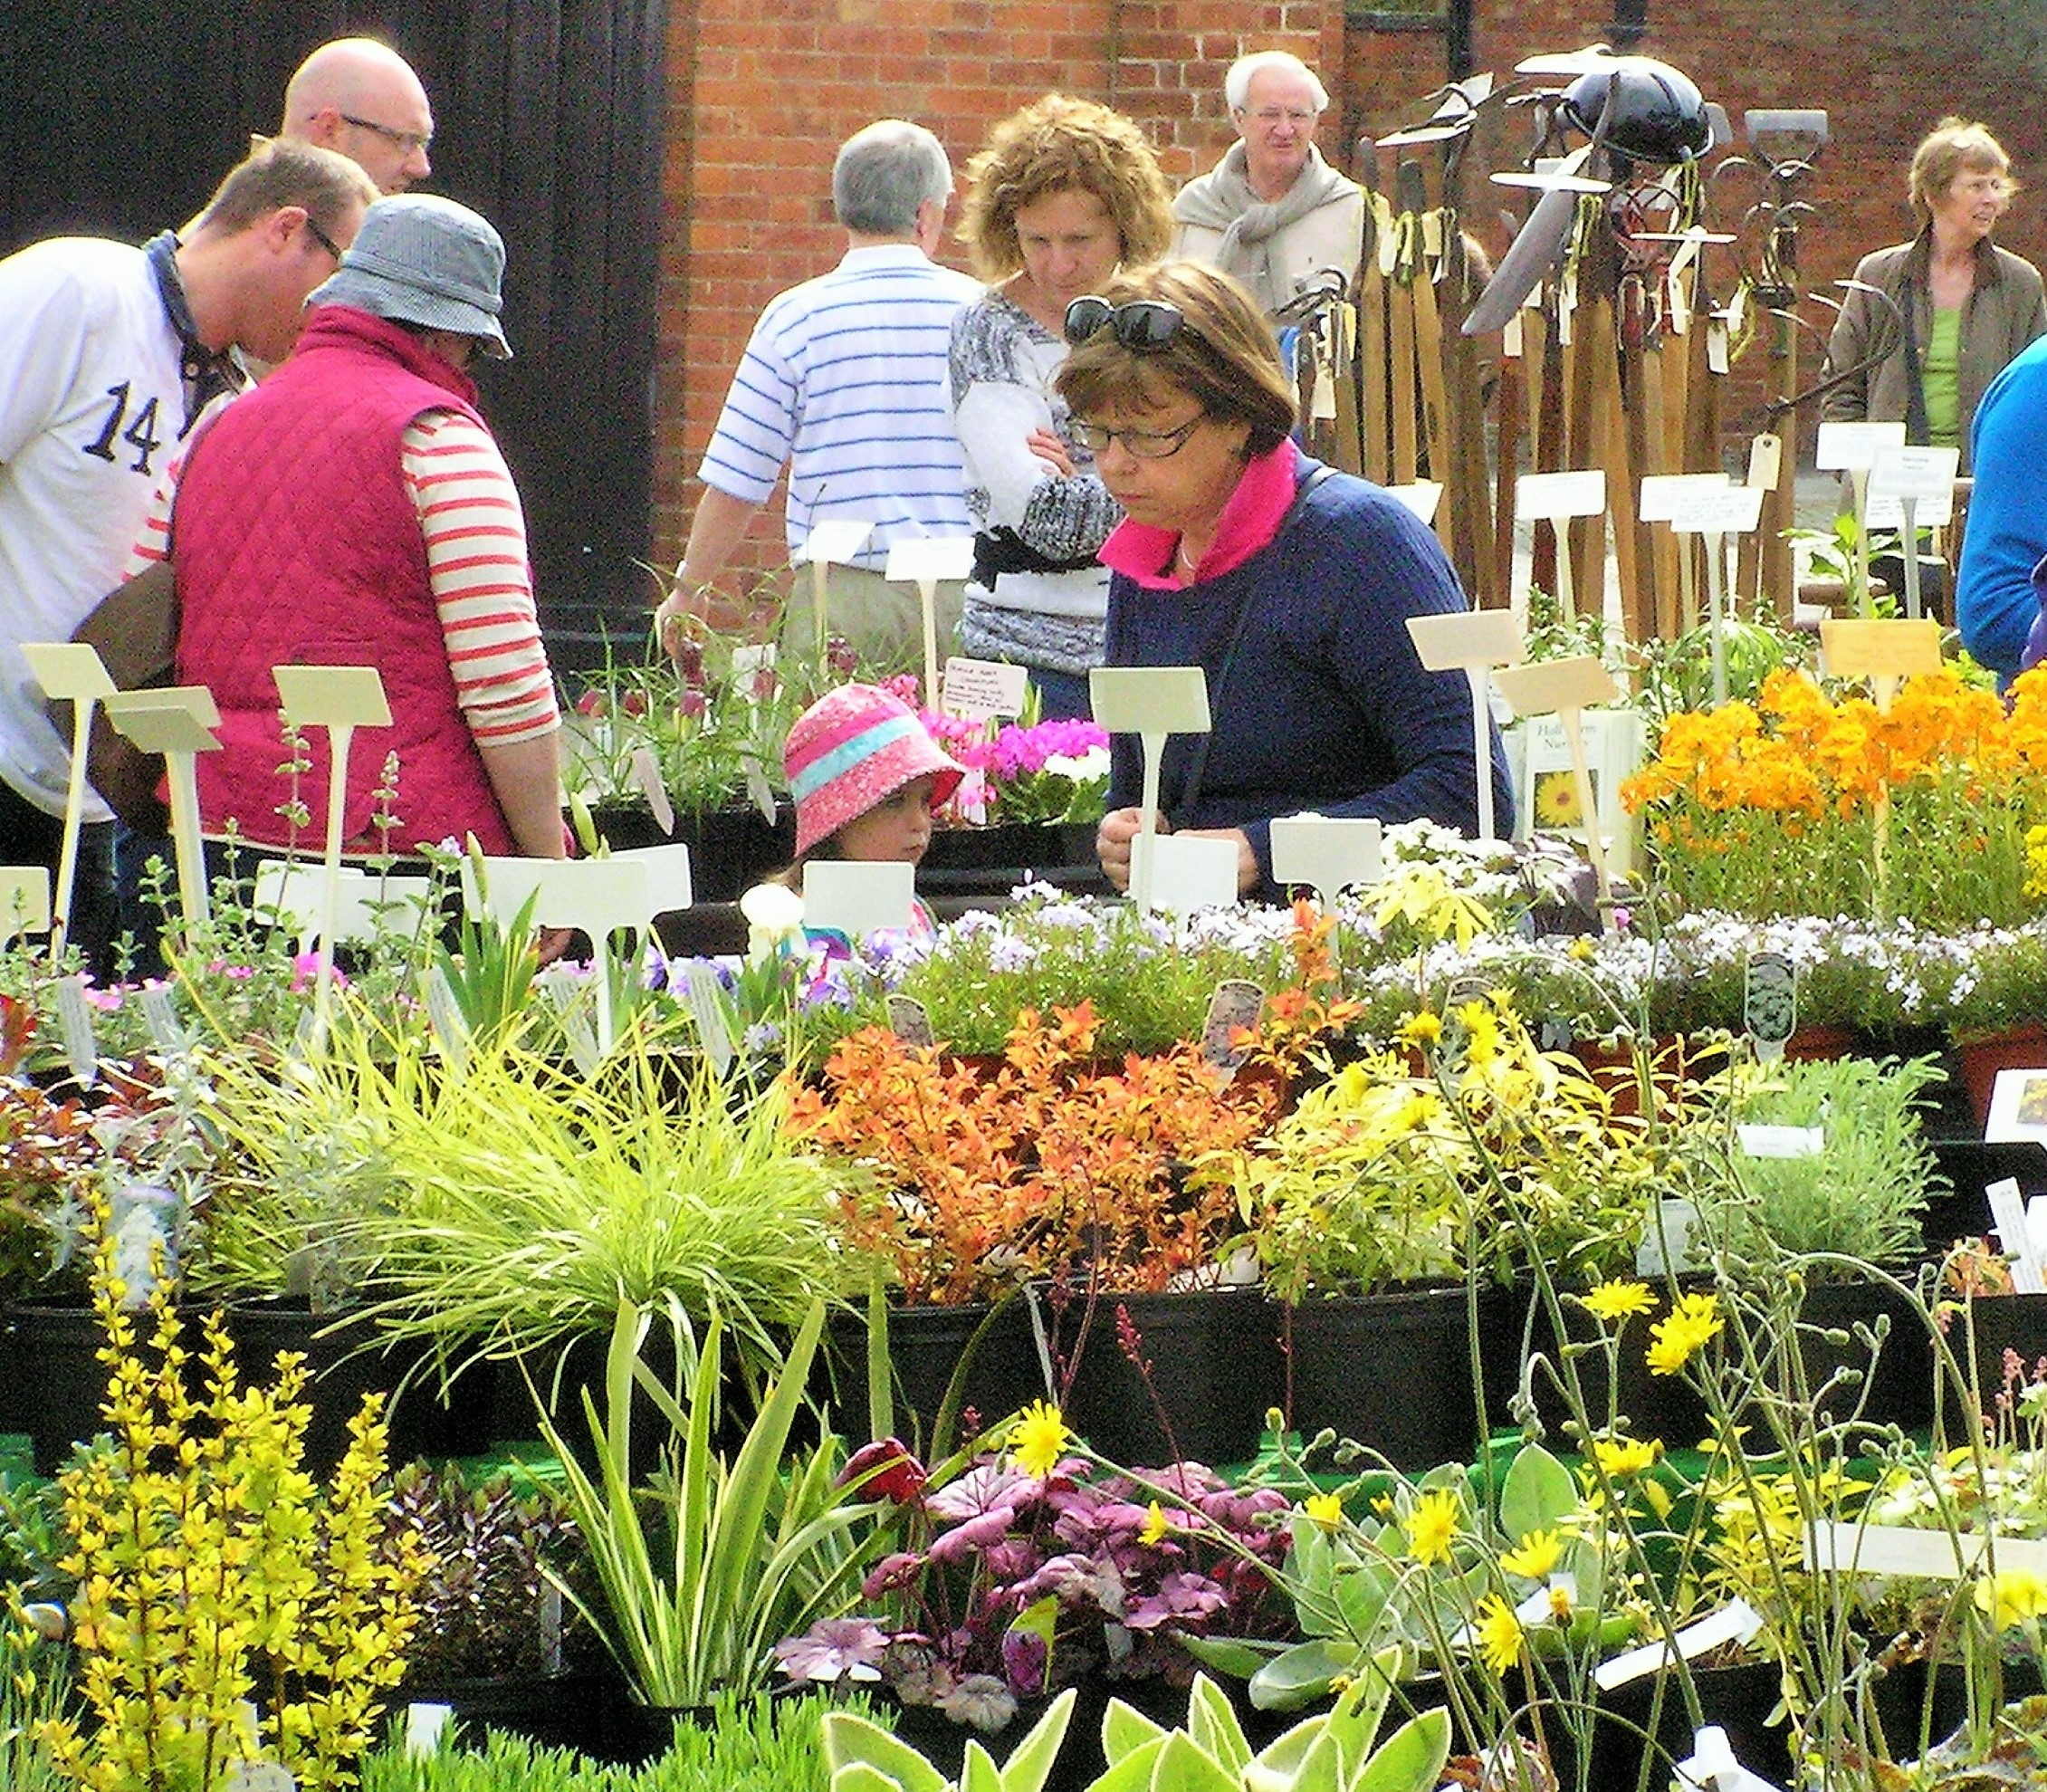 Plant Hunters' Fair at Hoghton Tower, Nr Preston on Saturday 7th April 2018